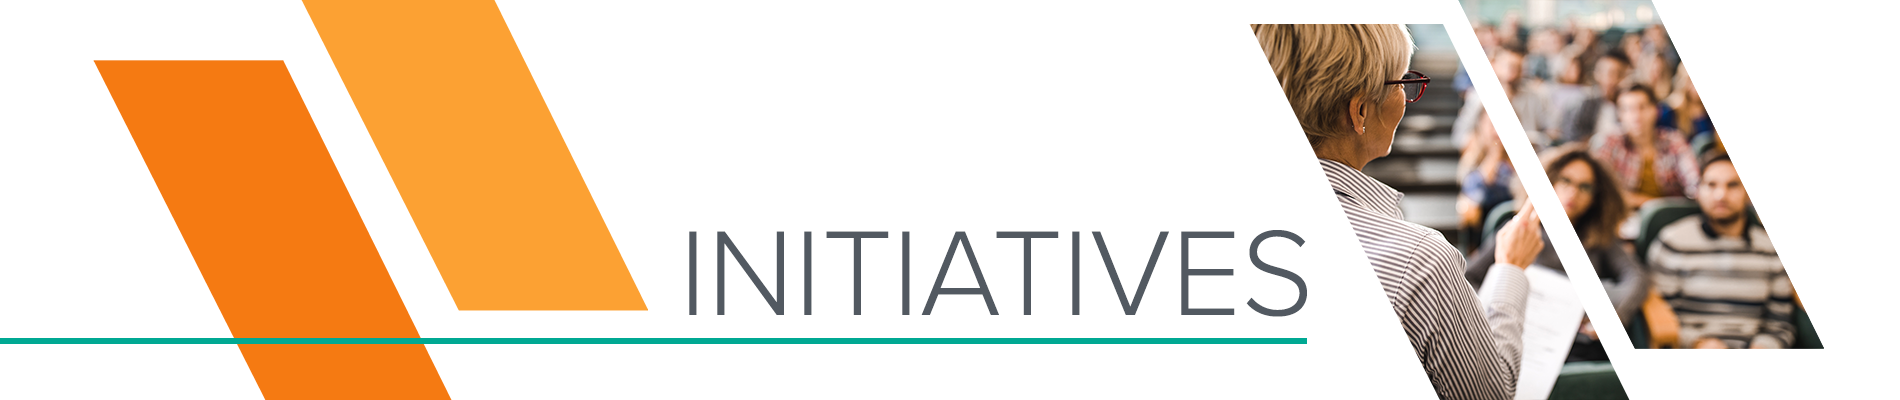 Initiatives header